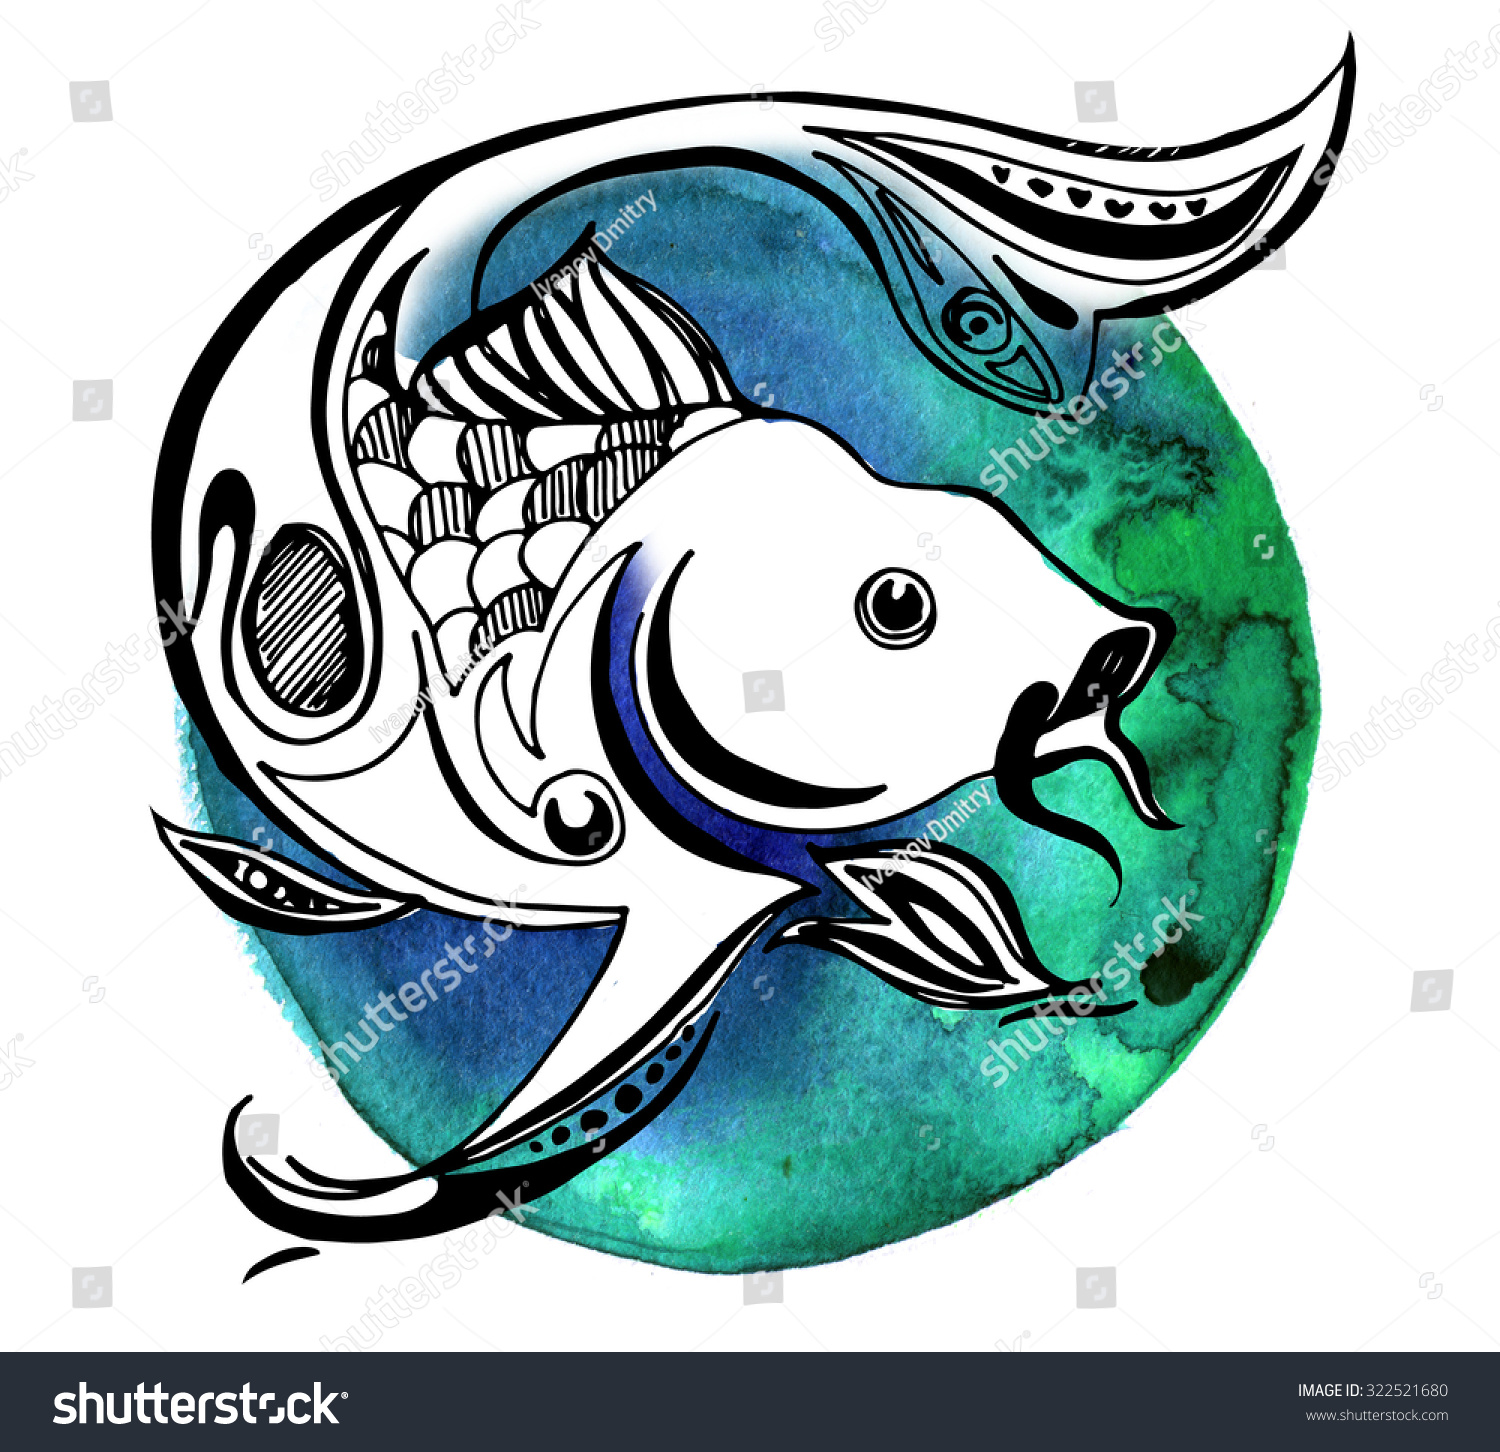 Line fish watercolor circle graphic koi stock illustration for Koi meaning in english